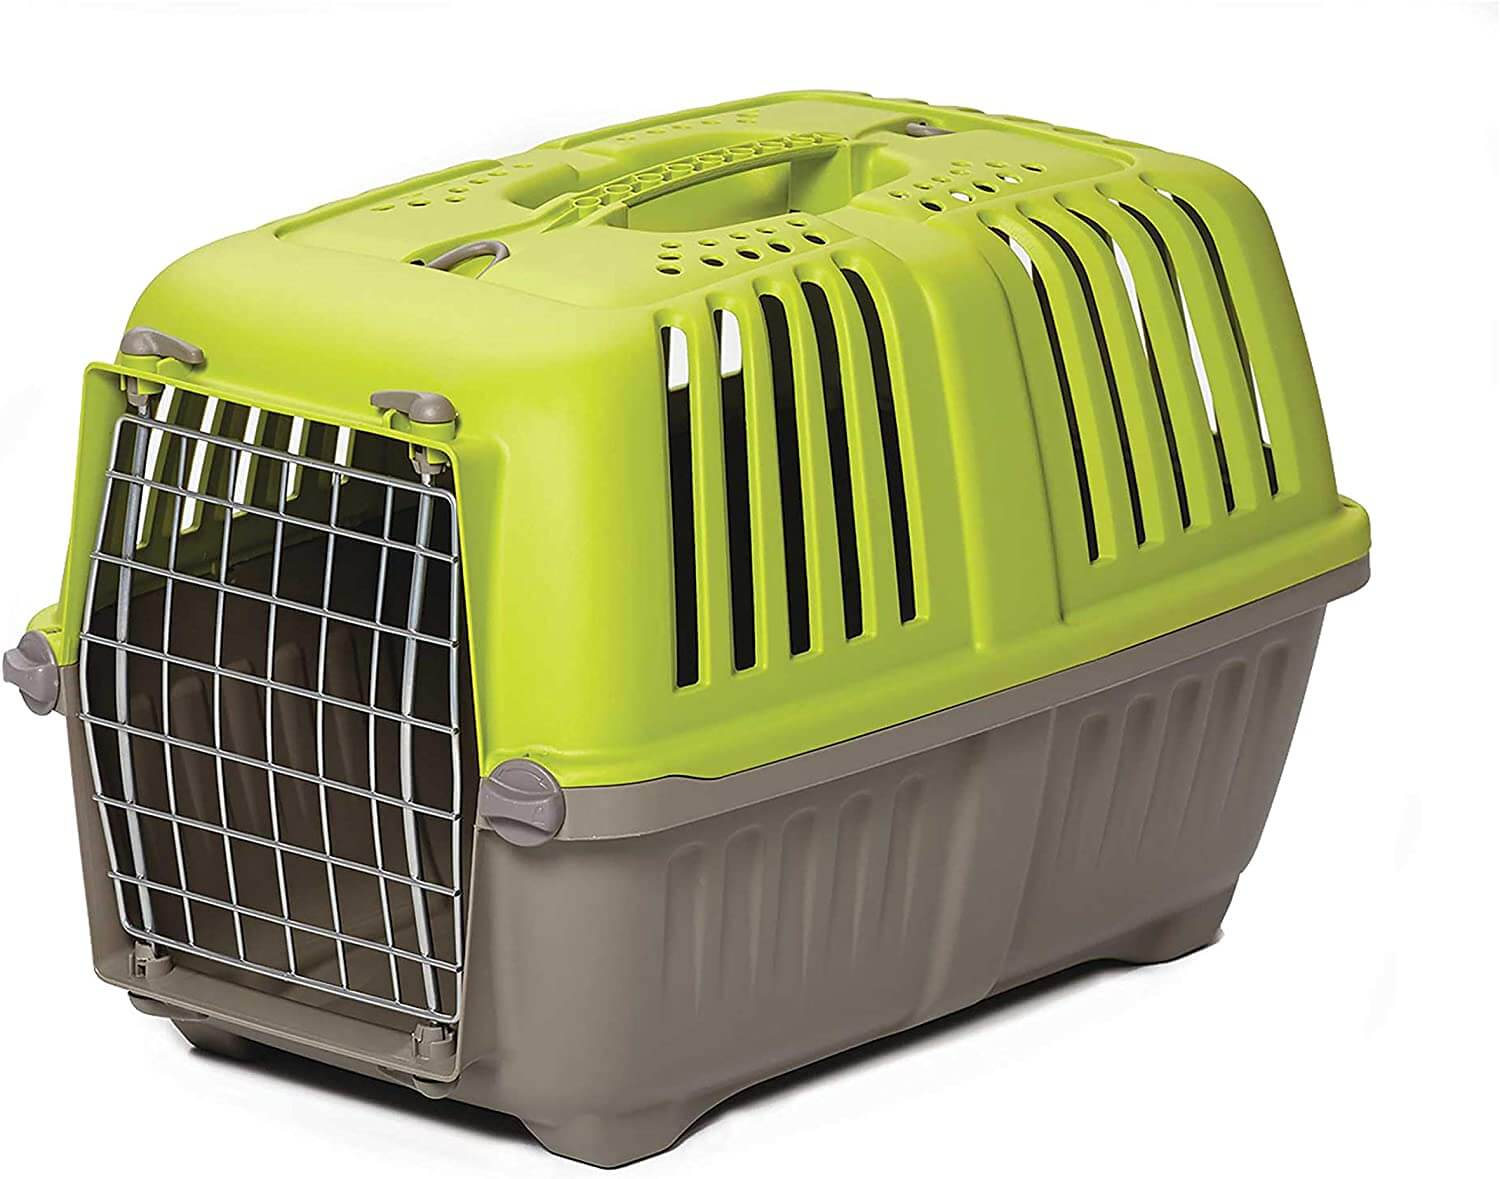 MidWest Homes for Pets Travel Carrier 22 inch Green